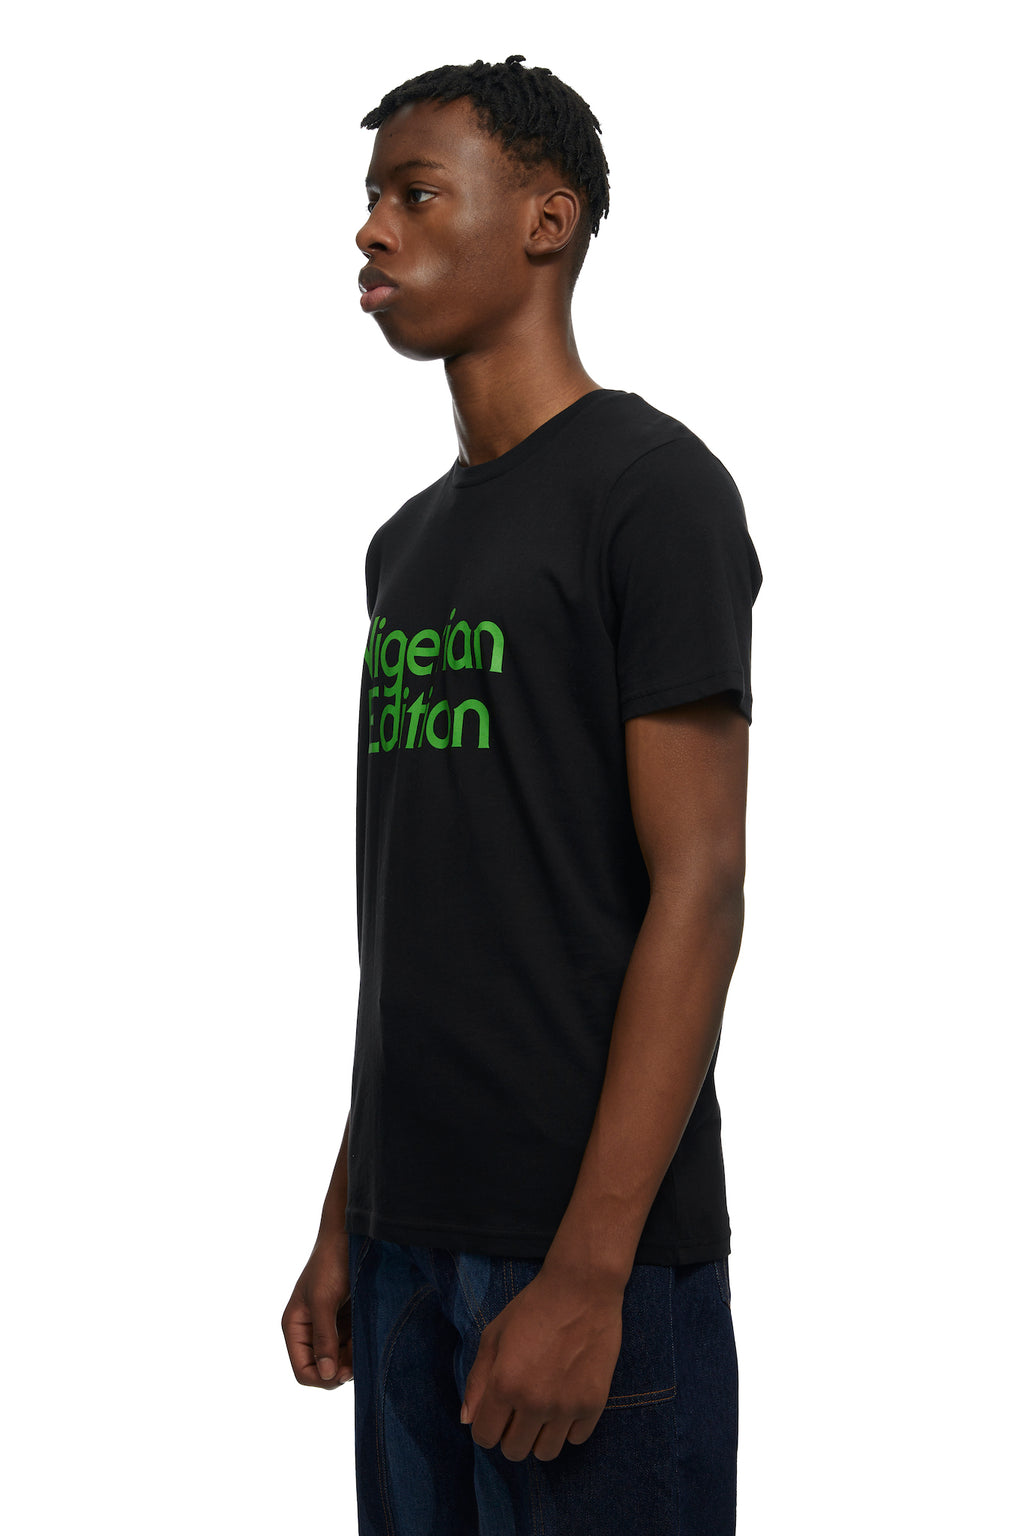 HTOWN, AHLUWALIA, AHLUWALIA MENSWEAR, HTOWN AHLUWALIA, AHLUWALIA NIGERIAN EDITION T-SHIRT, NIGERIAN EDITION T-SHIRT, AHLUWALIA T-SHIRT, NIGERIAN T-SHIRT, ORGANIC COTTON COTTON, ORGANIC T-SHIRT, LONDON DESIGNER, LONDON BOUTIQUE, SPRING SUMMER 2021, SS21, LUXURY DESIGNER, LUXURY FASHION, MEN'S LUXURY PRINTED T-SHIRT, LUXURY T-SHIRT, LUXURY PRINTED T-SHIRT, LUXURY ORGANIC T-SHIRT